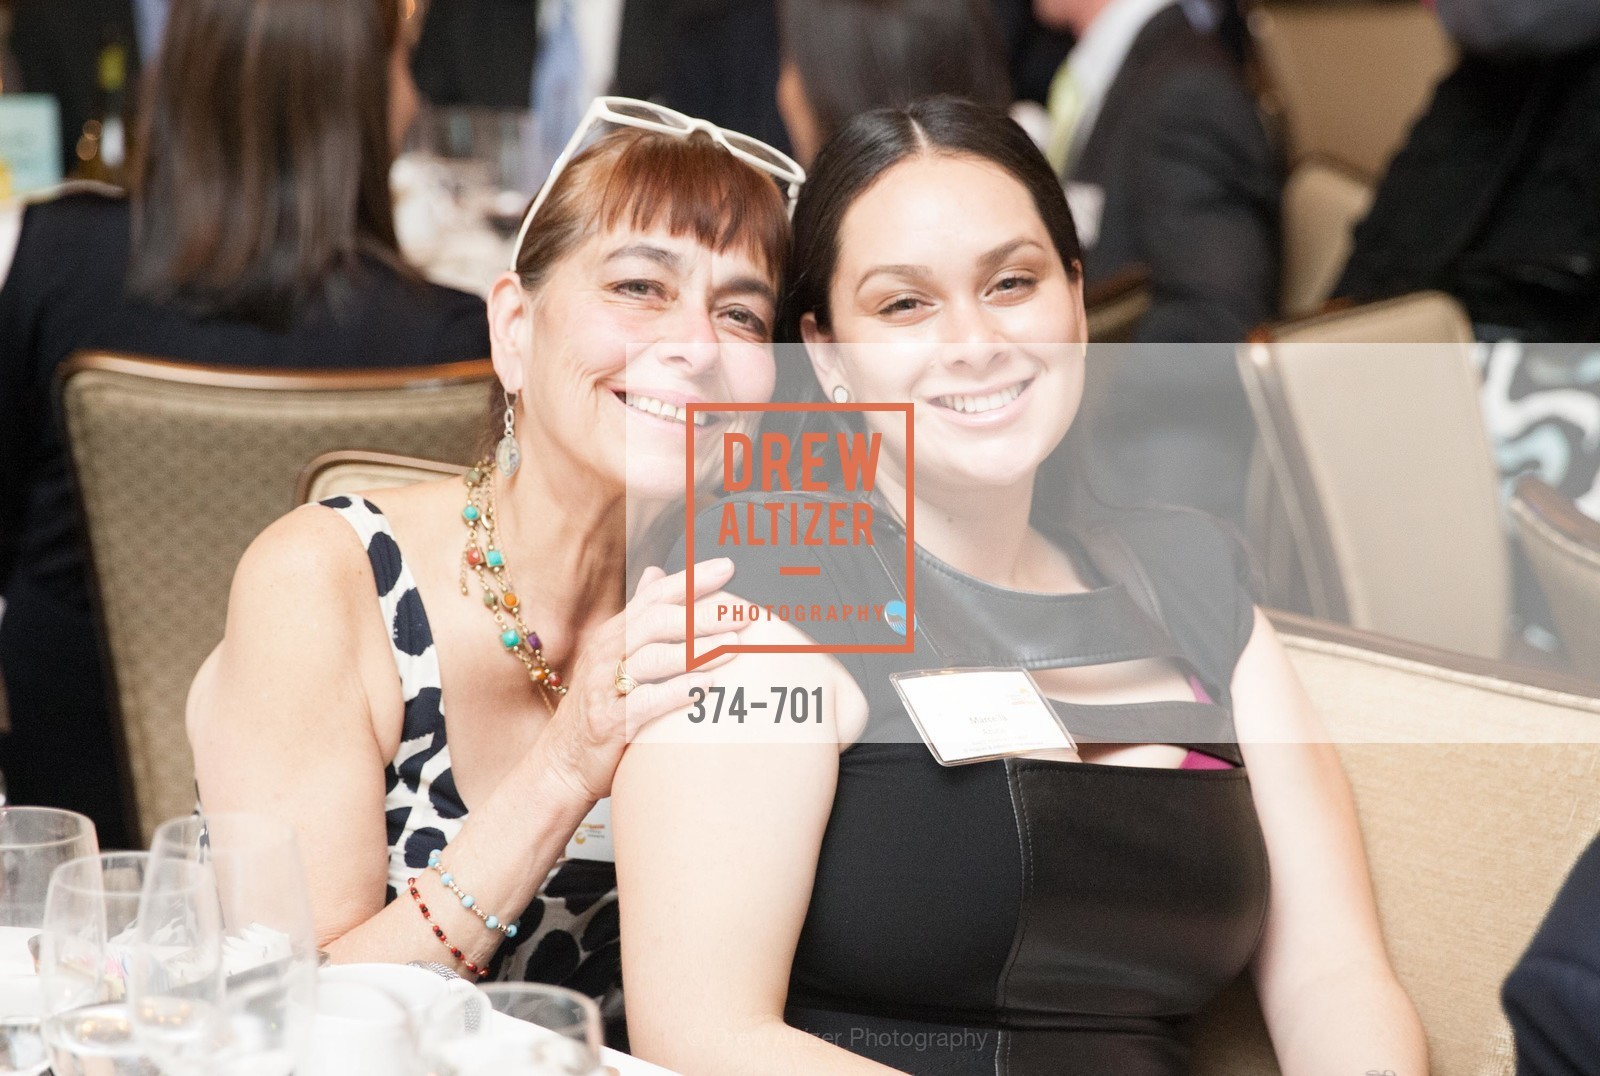 Elizabeth Duniega, Marcela Azucar, SUMMER SEARCH San Francisco 25th Anniversary, US, May 7th, 2015,Drew Altizer, Drew Altizer Photography, full-service agency, private events, San Francisco photographer, photographer california